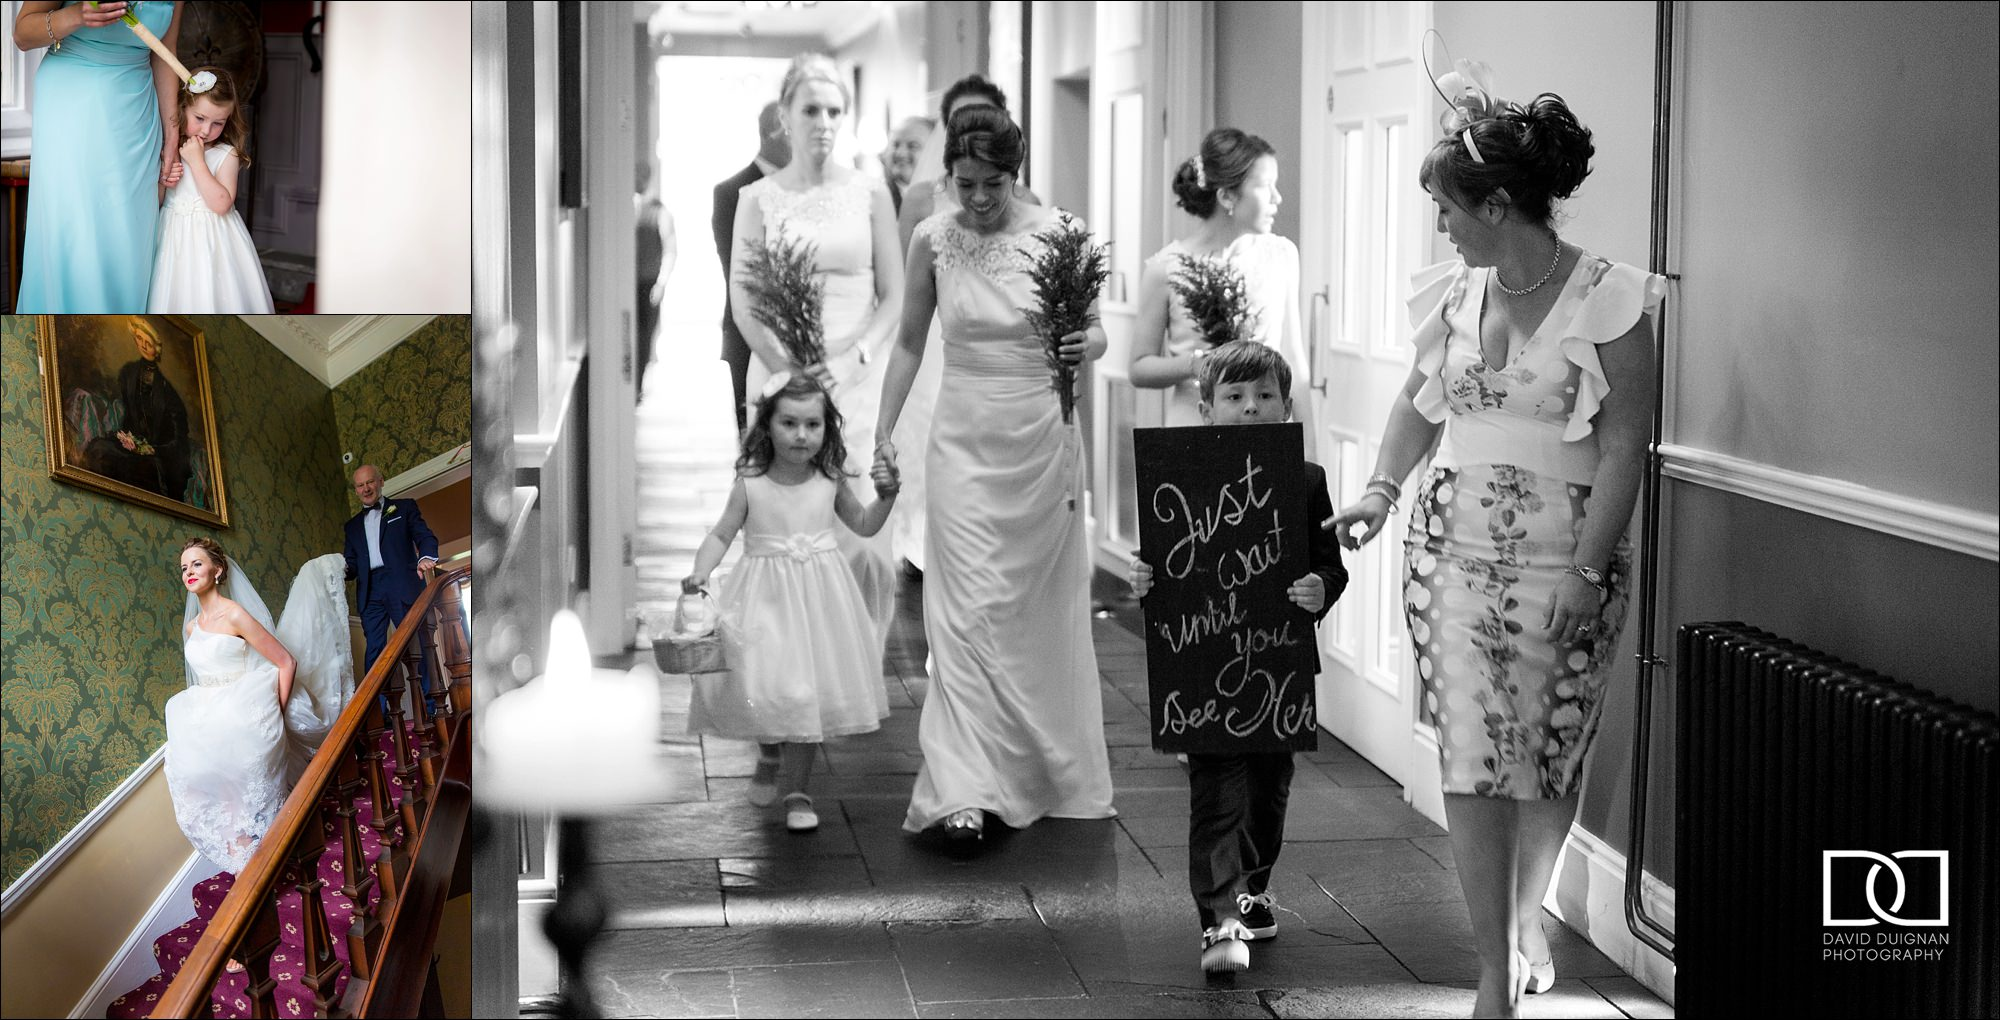 louth wedding photographer david duignan photography castle bellingham wedding Ireland 0021